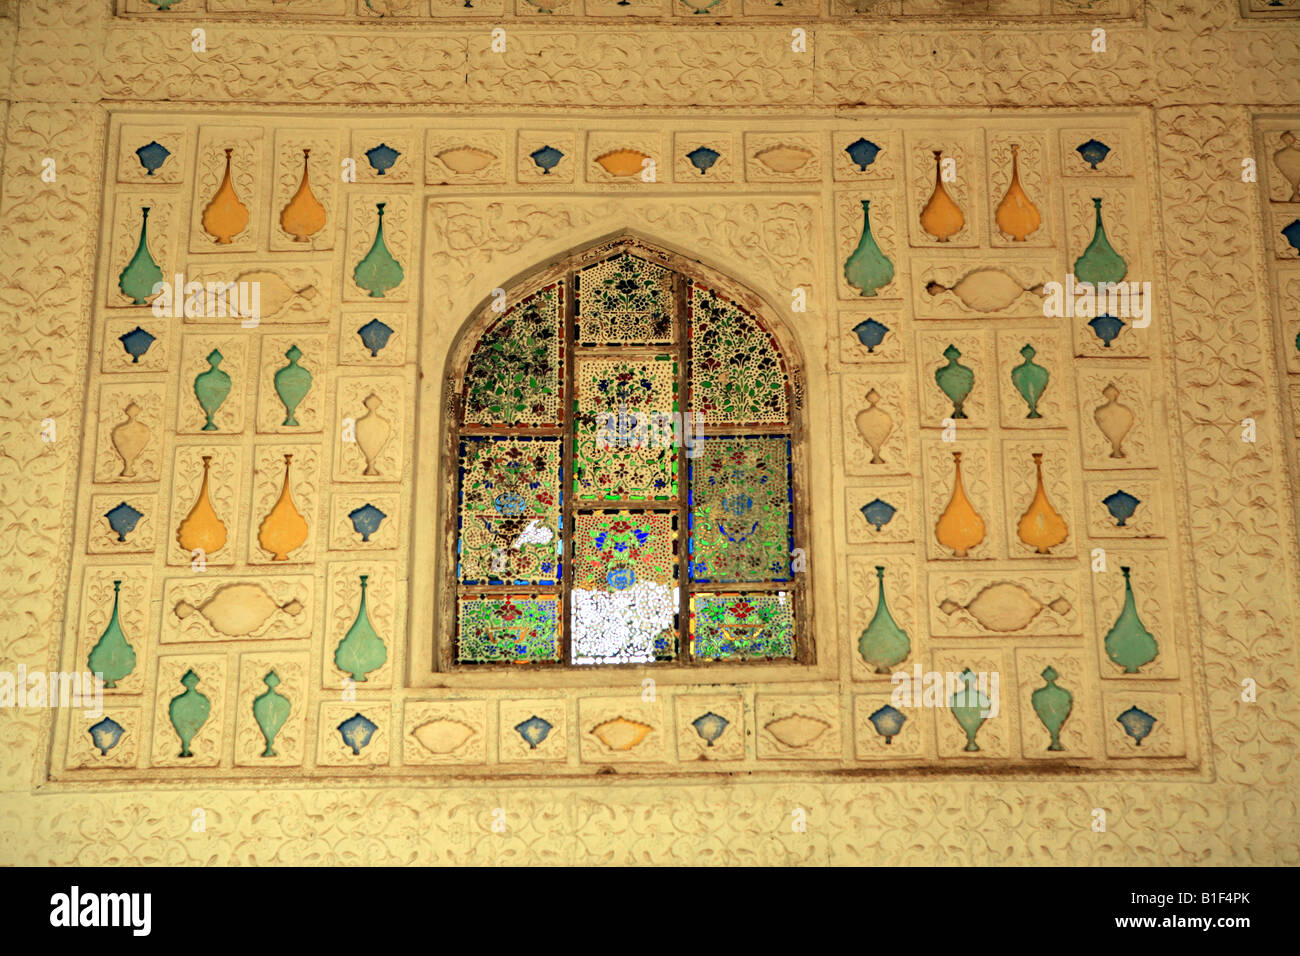 Exquisite wall decorations inside the Amber Fort Jaipur India Stock ...